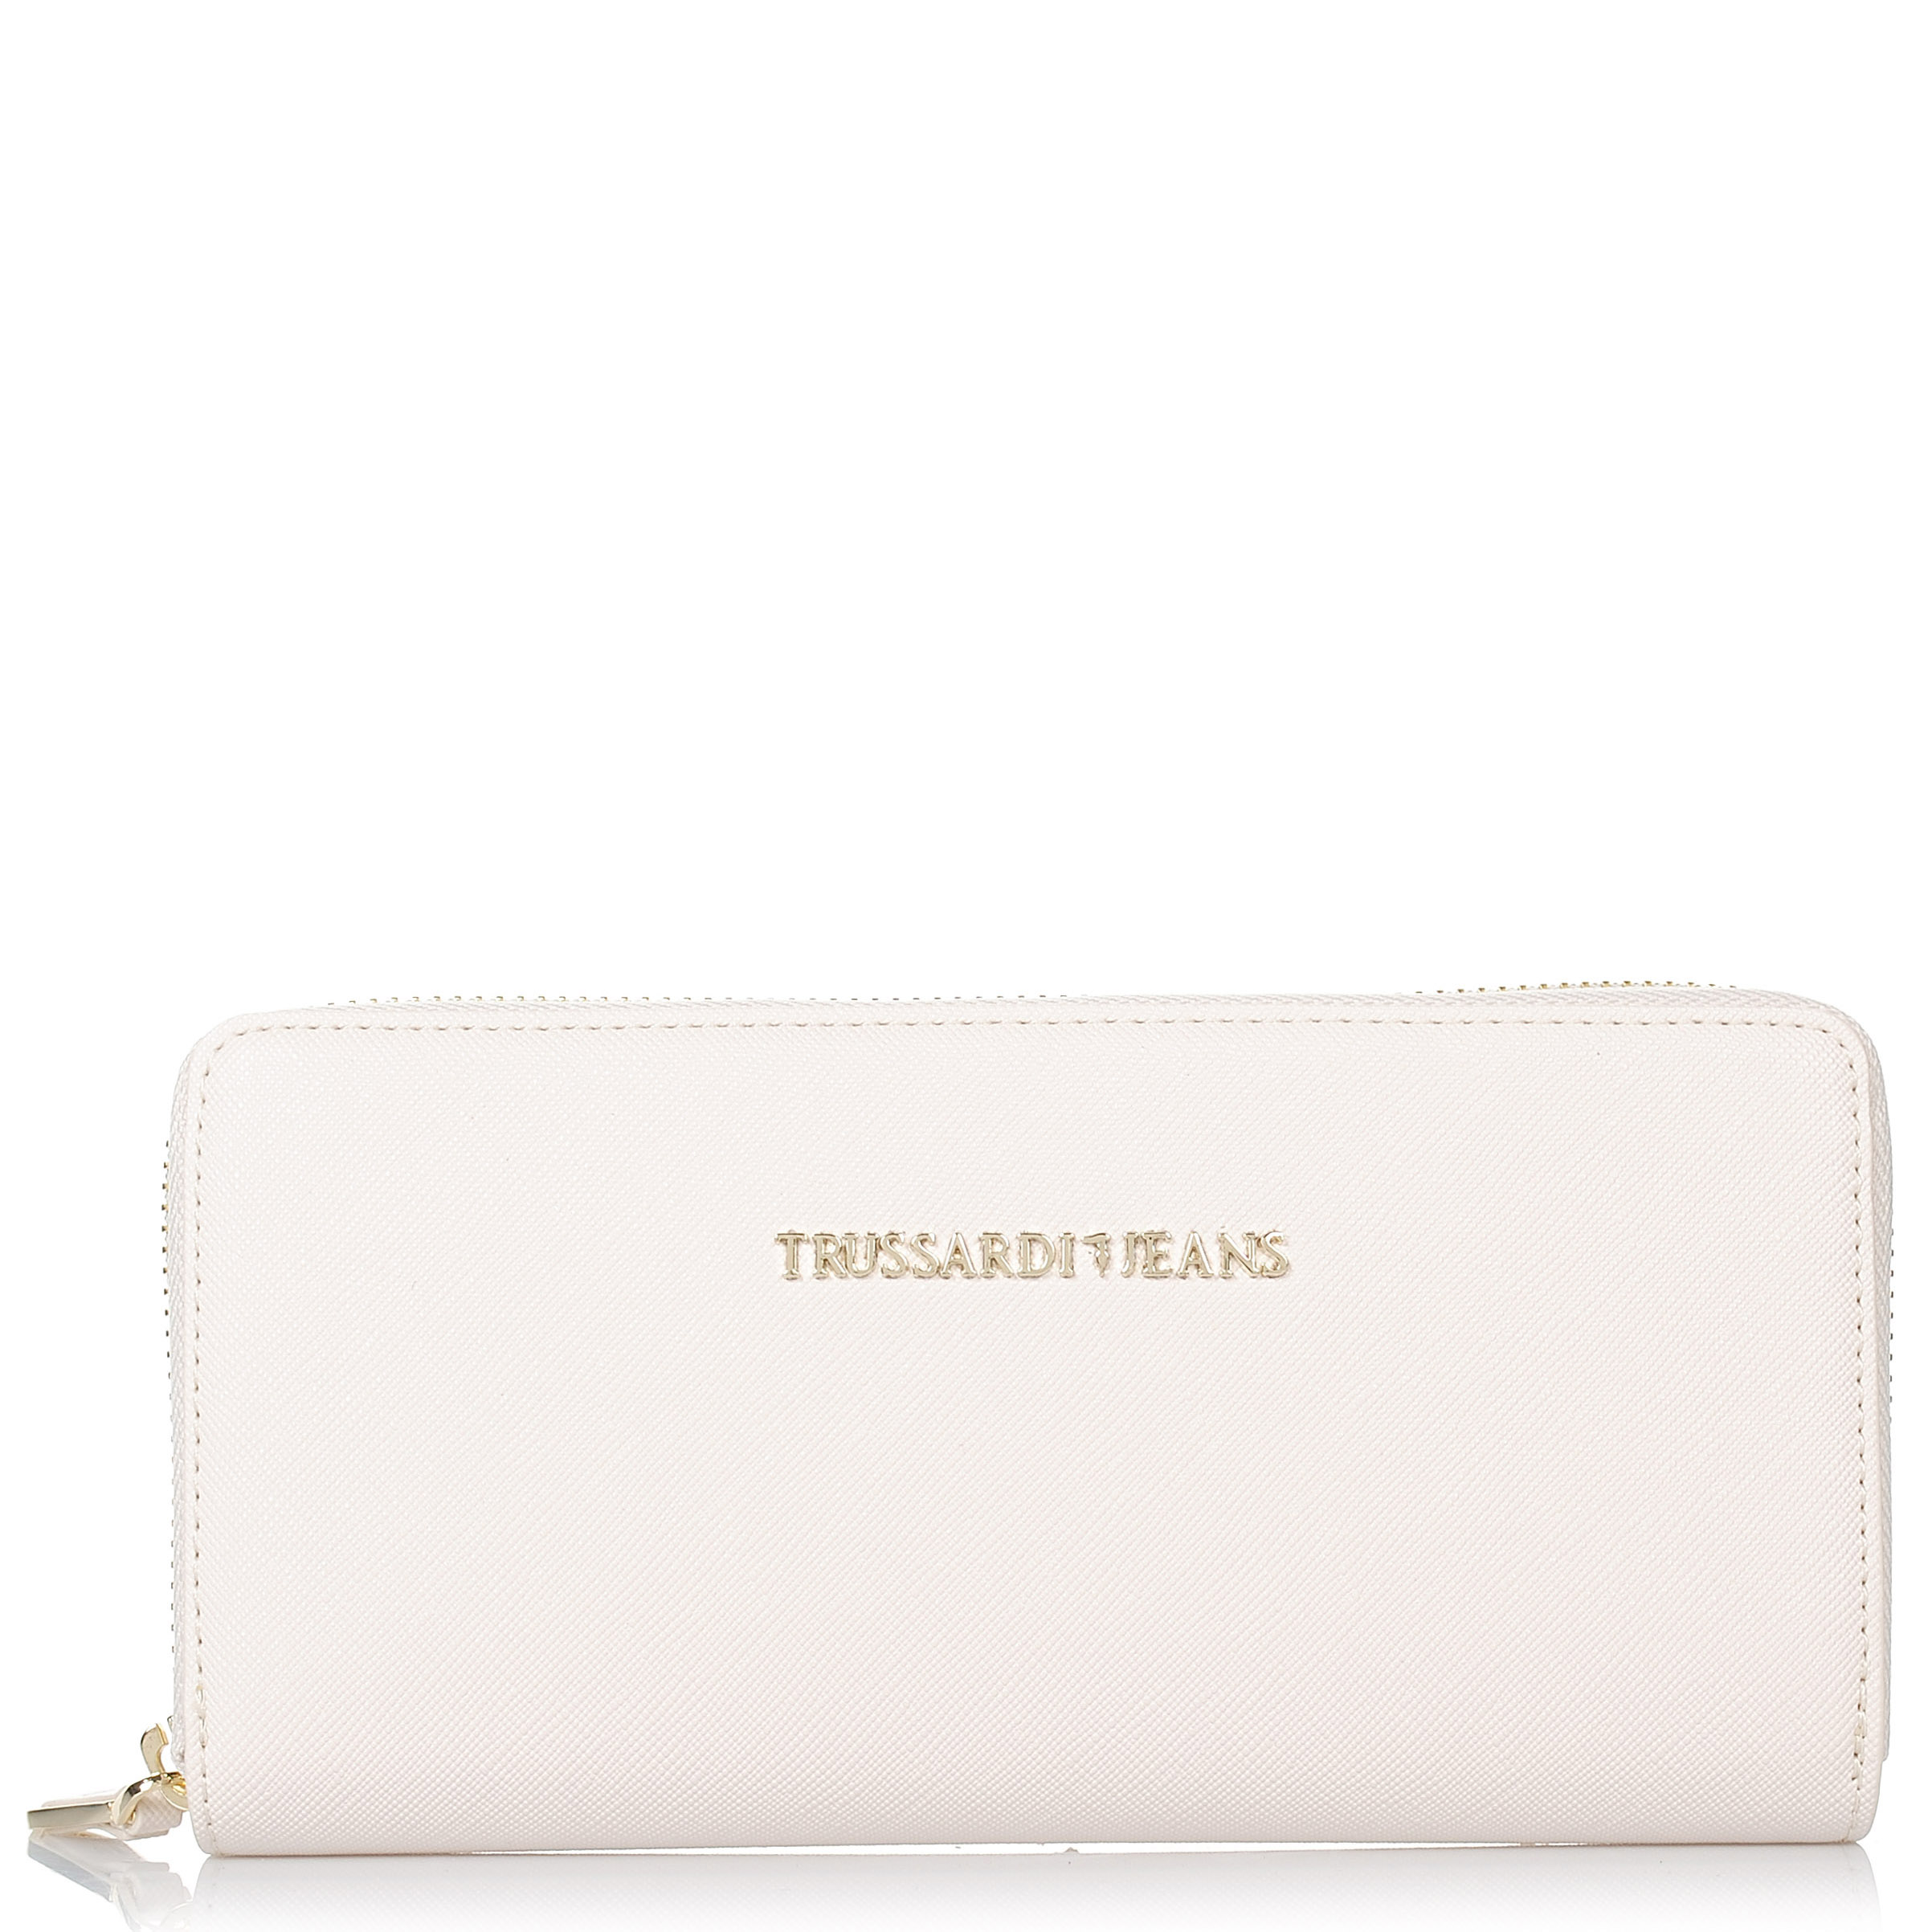 Πορτοφόλι Κασετίνα Trussardi Jeans Levanto Ecosaffiano Wallet Zip Around 75W011